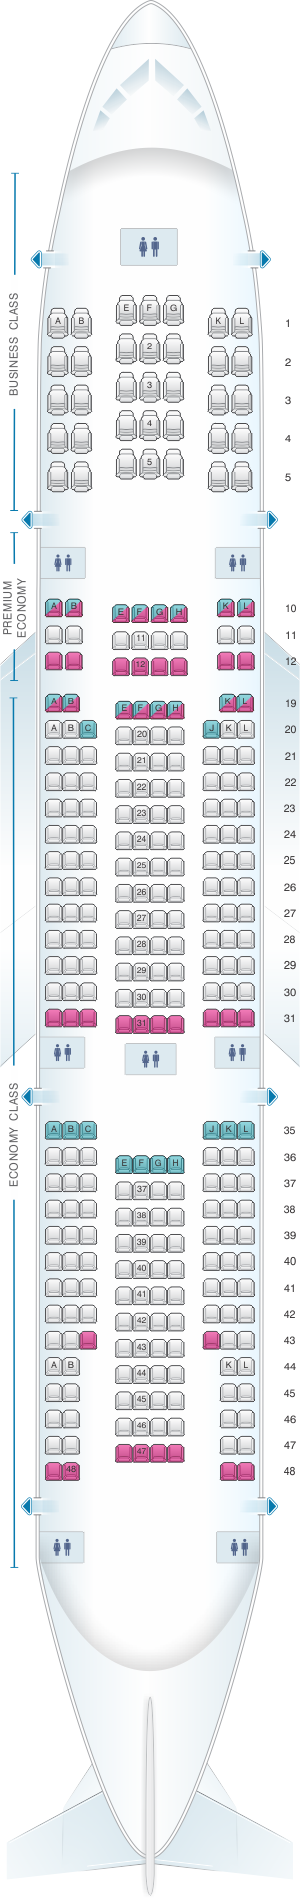 Seat map for Air France Boeing B777 200 International Long-Haul 309PAX